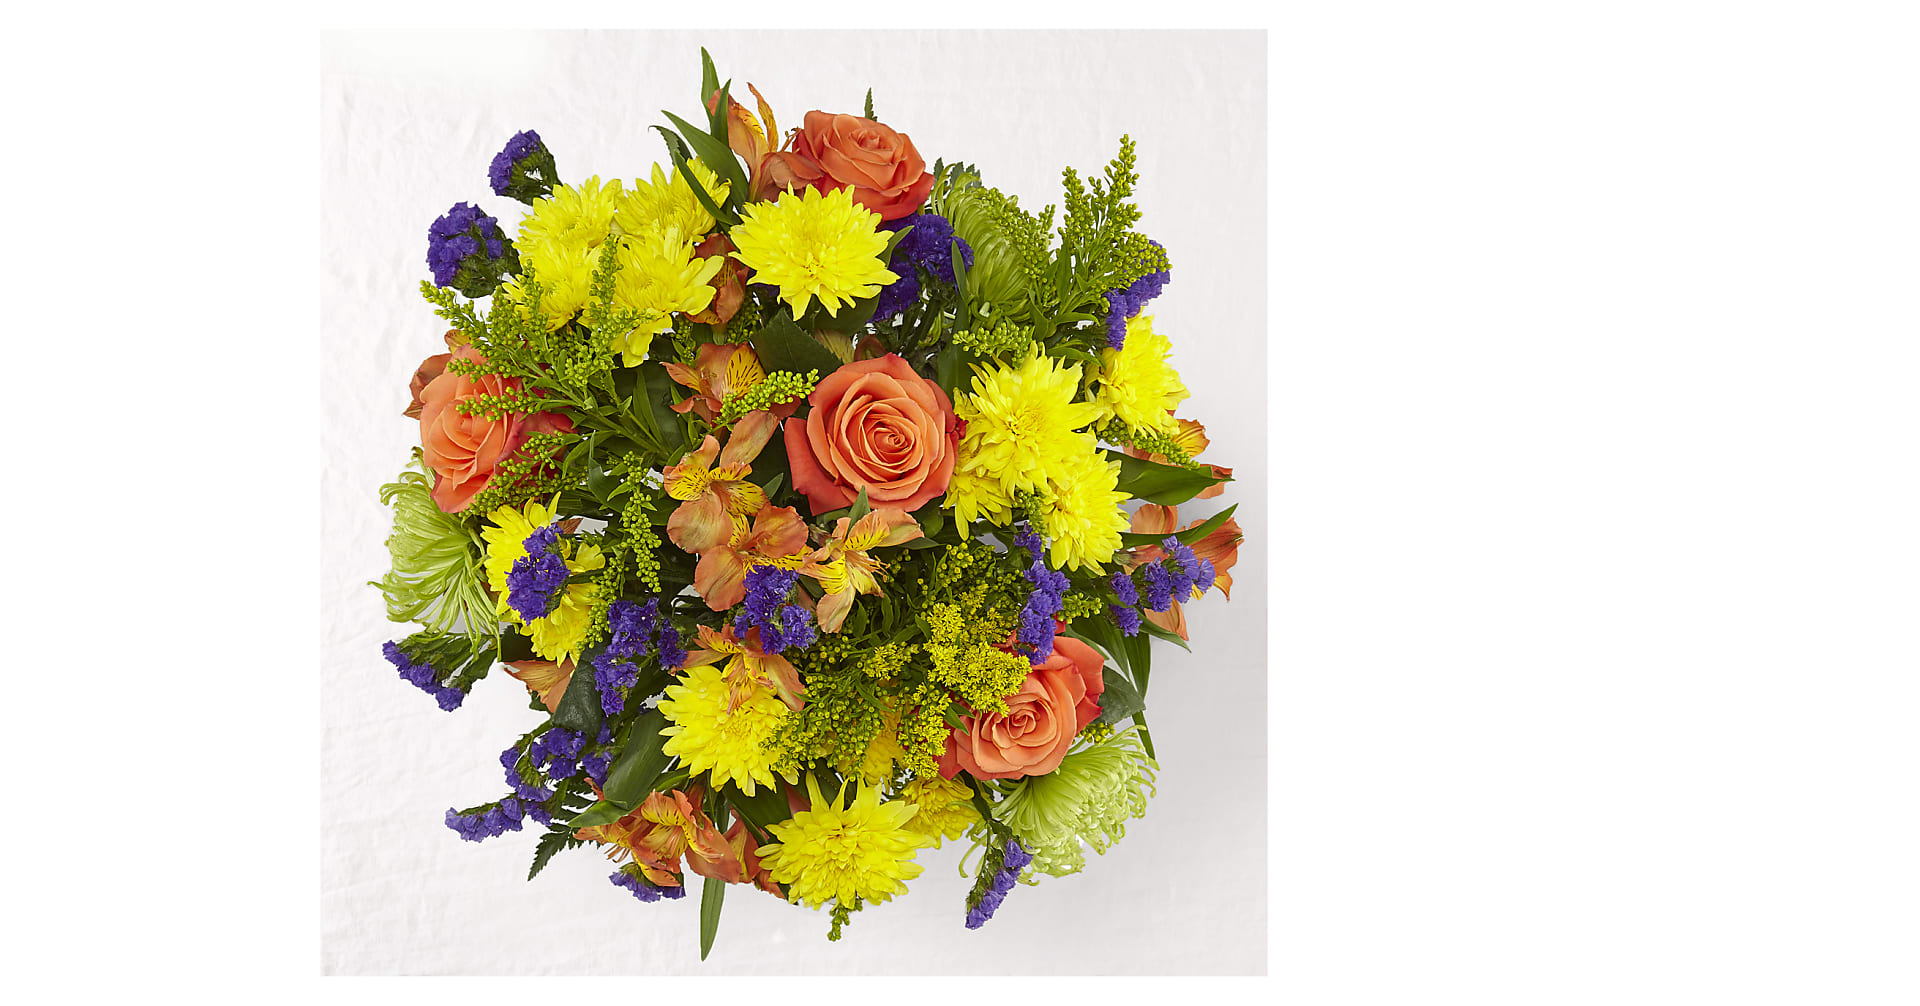 Marmalade Skies Bouquet - Image 2 Of 4